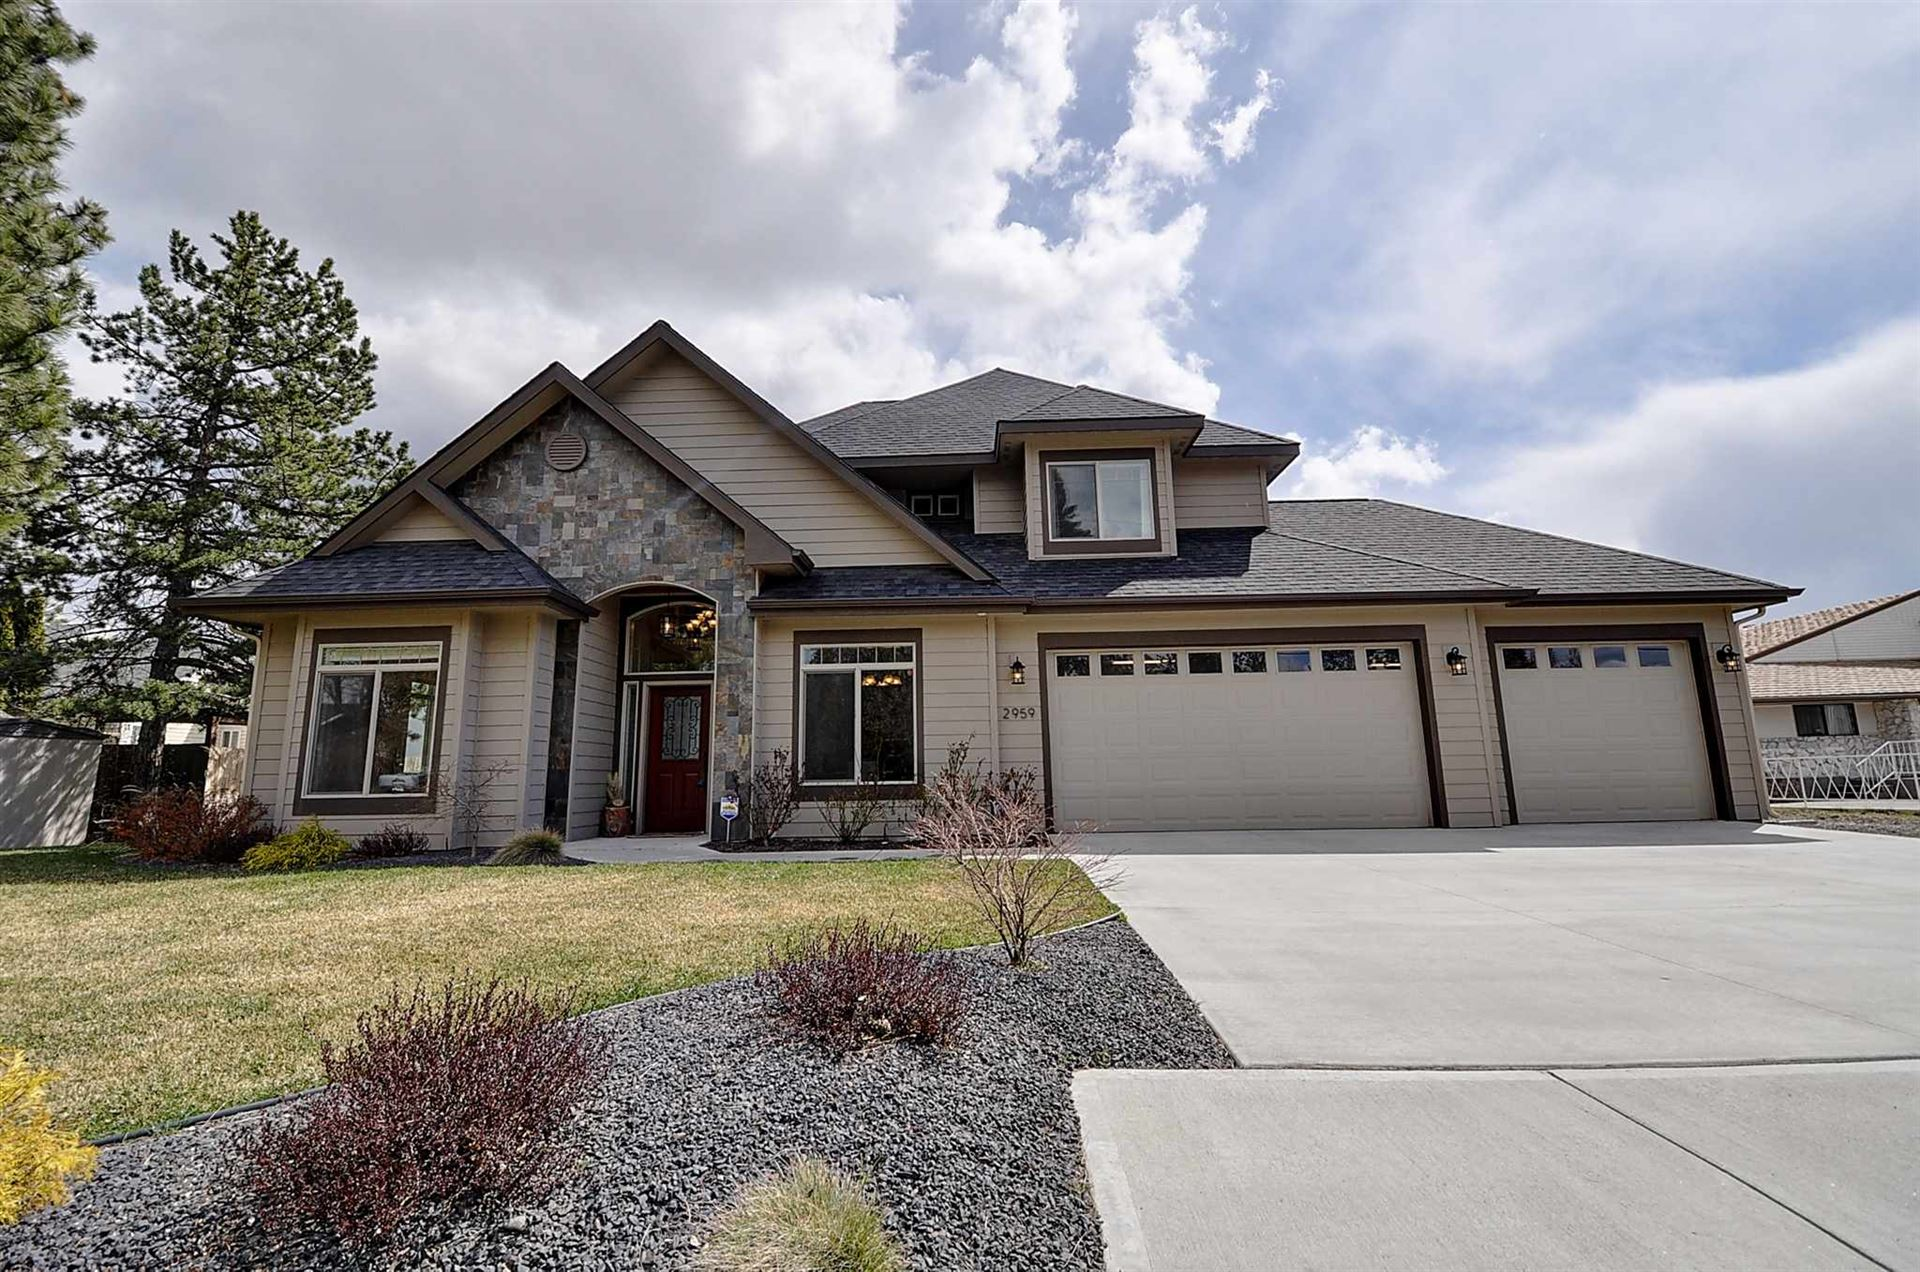 2959 W 22nd Ave, Spokane, WA 99224 - #: 202113721